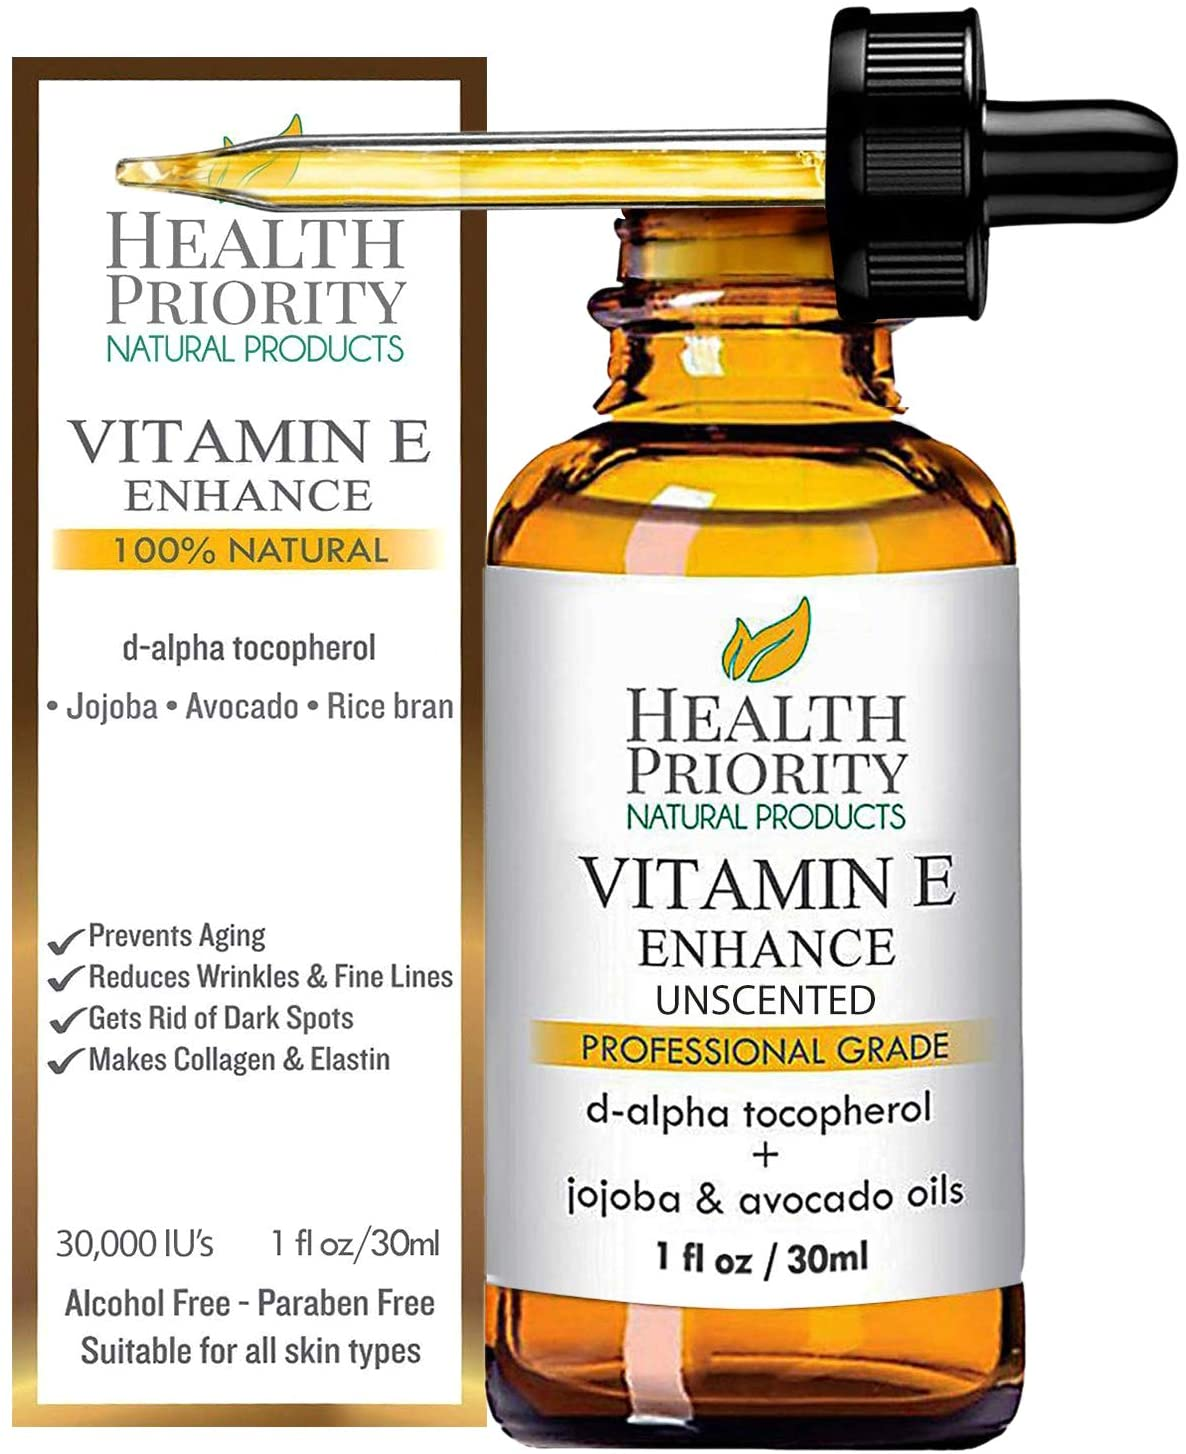 Aceite hidratante (Health Priority Natural Products)